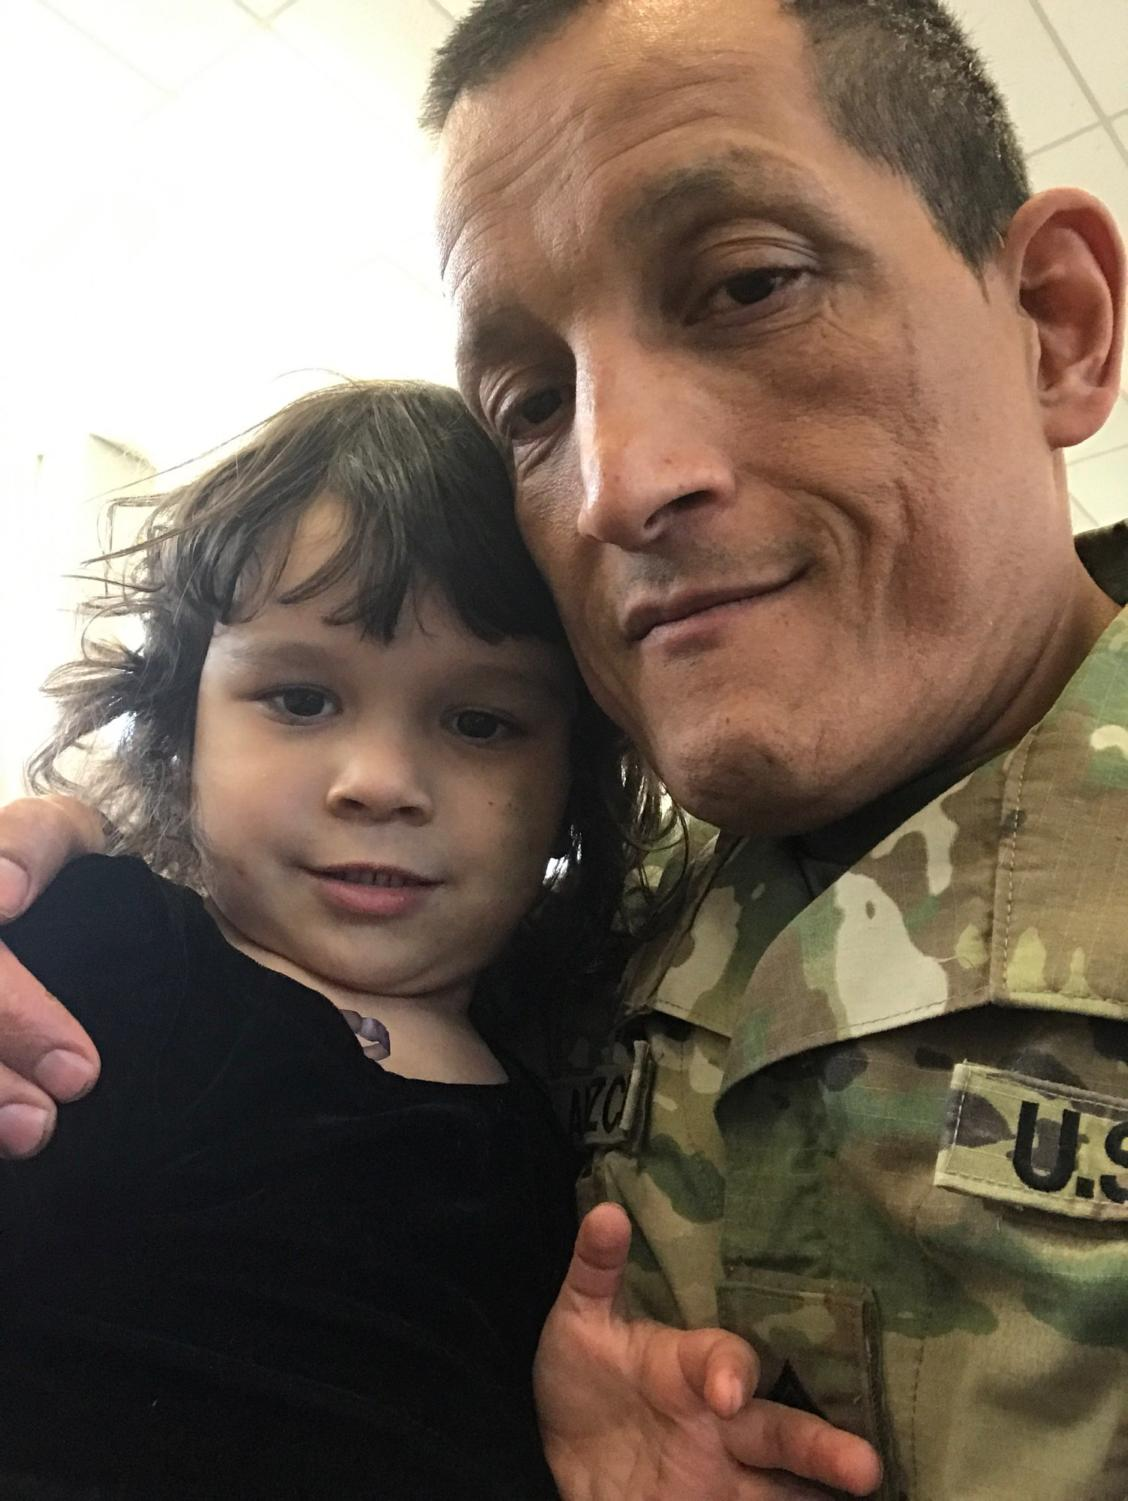 Officer Ricardo Amezcua and his 4-year old daughter Kayla are luckily safe from harm.